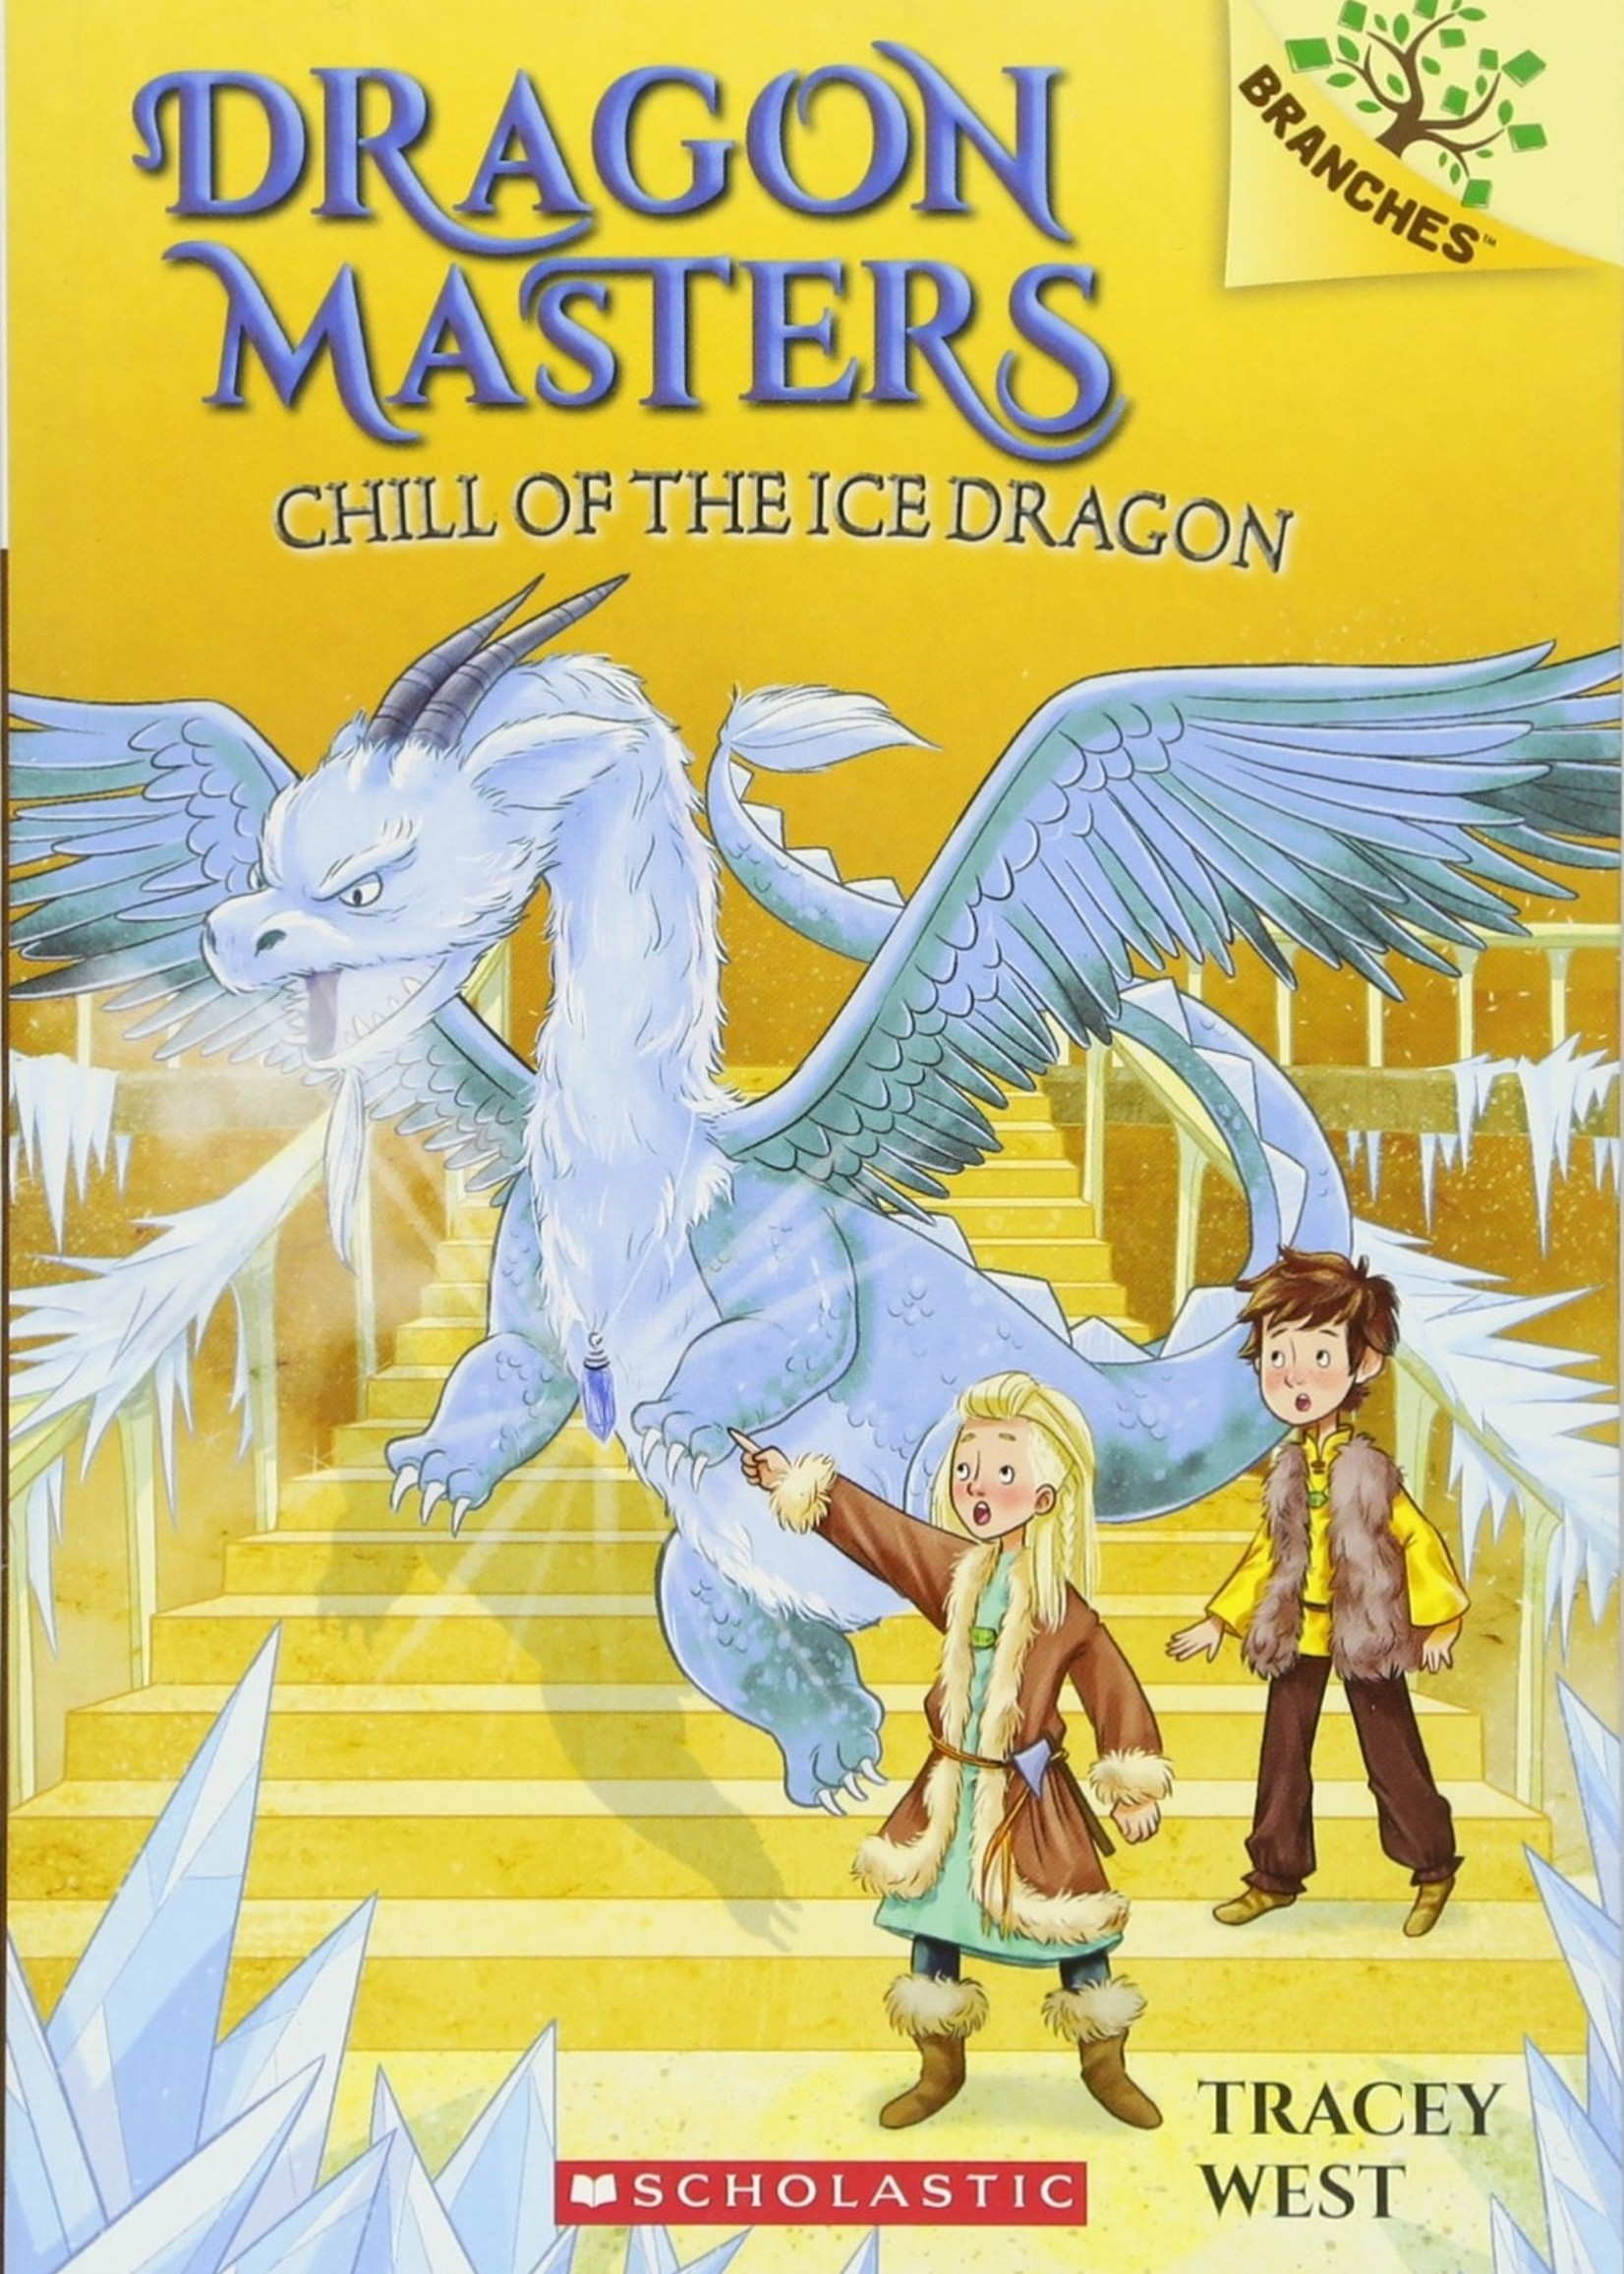 Dragon Masters #09, Chill of the Ice Dragon - Paperback